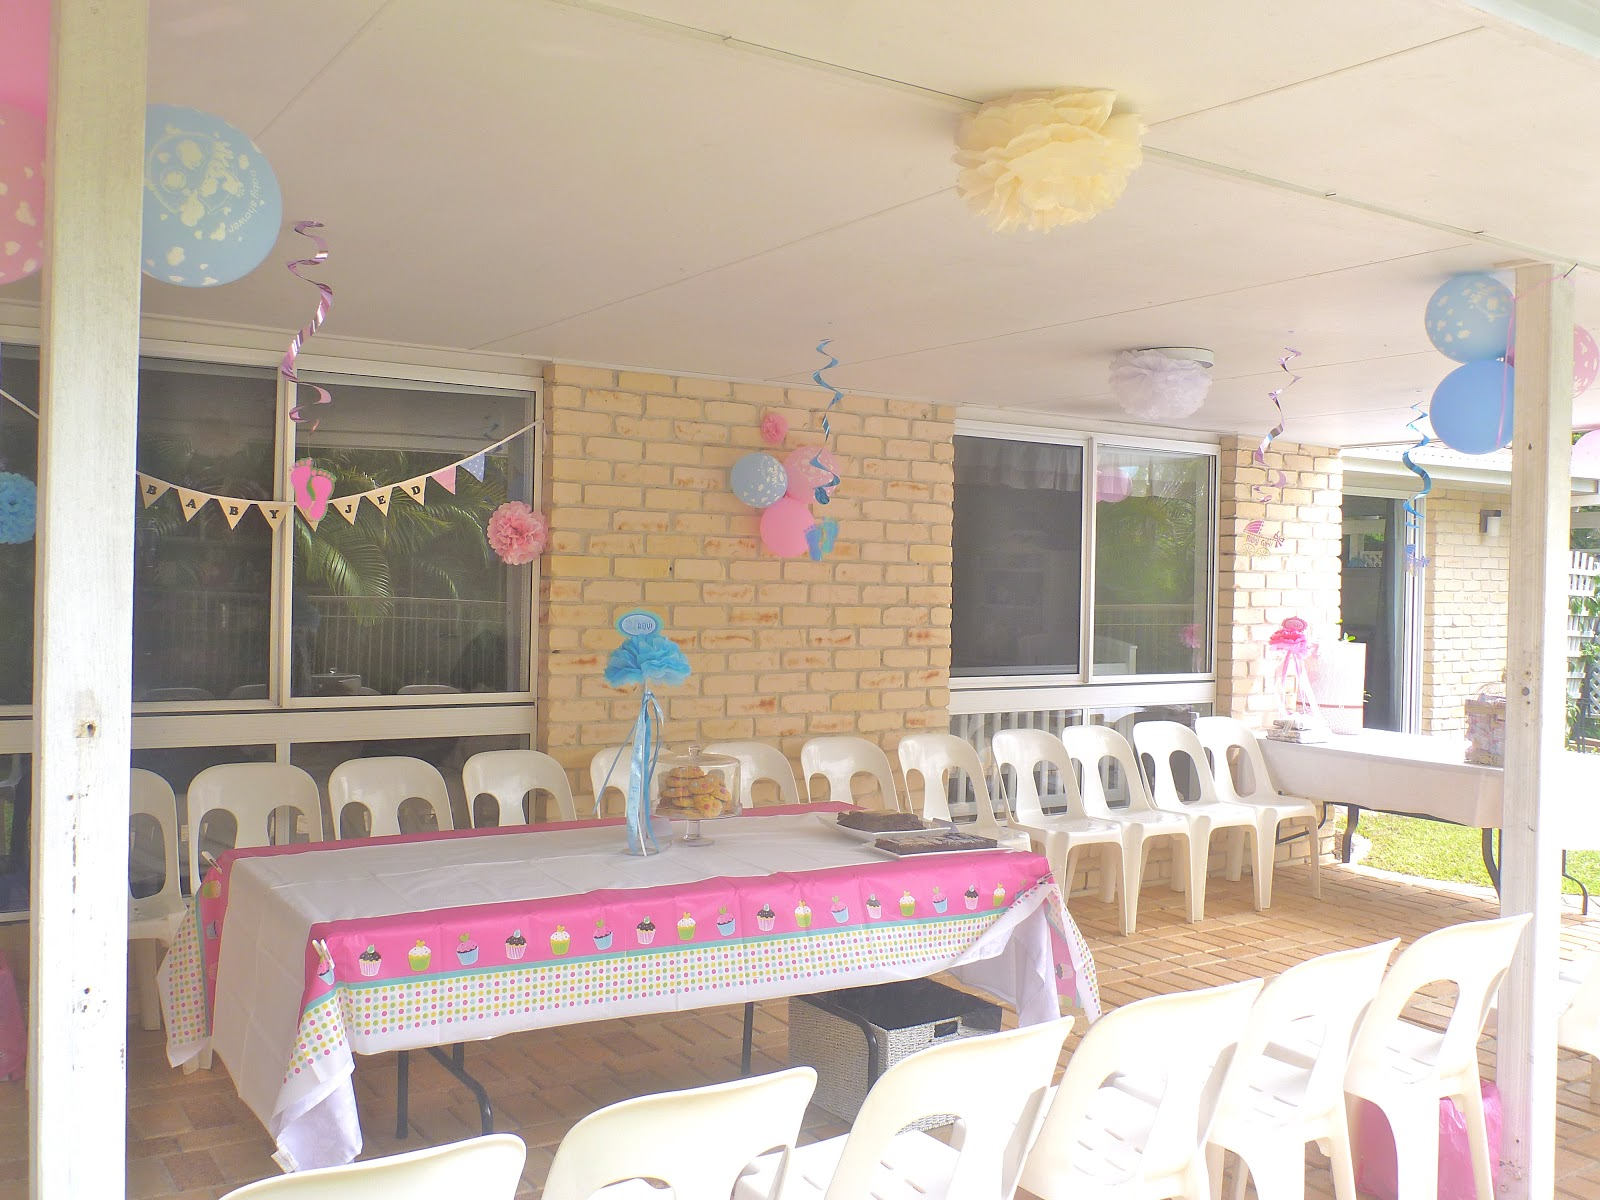 Cassadiva My Baby Shower The Decorations Part 1